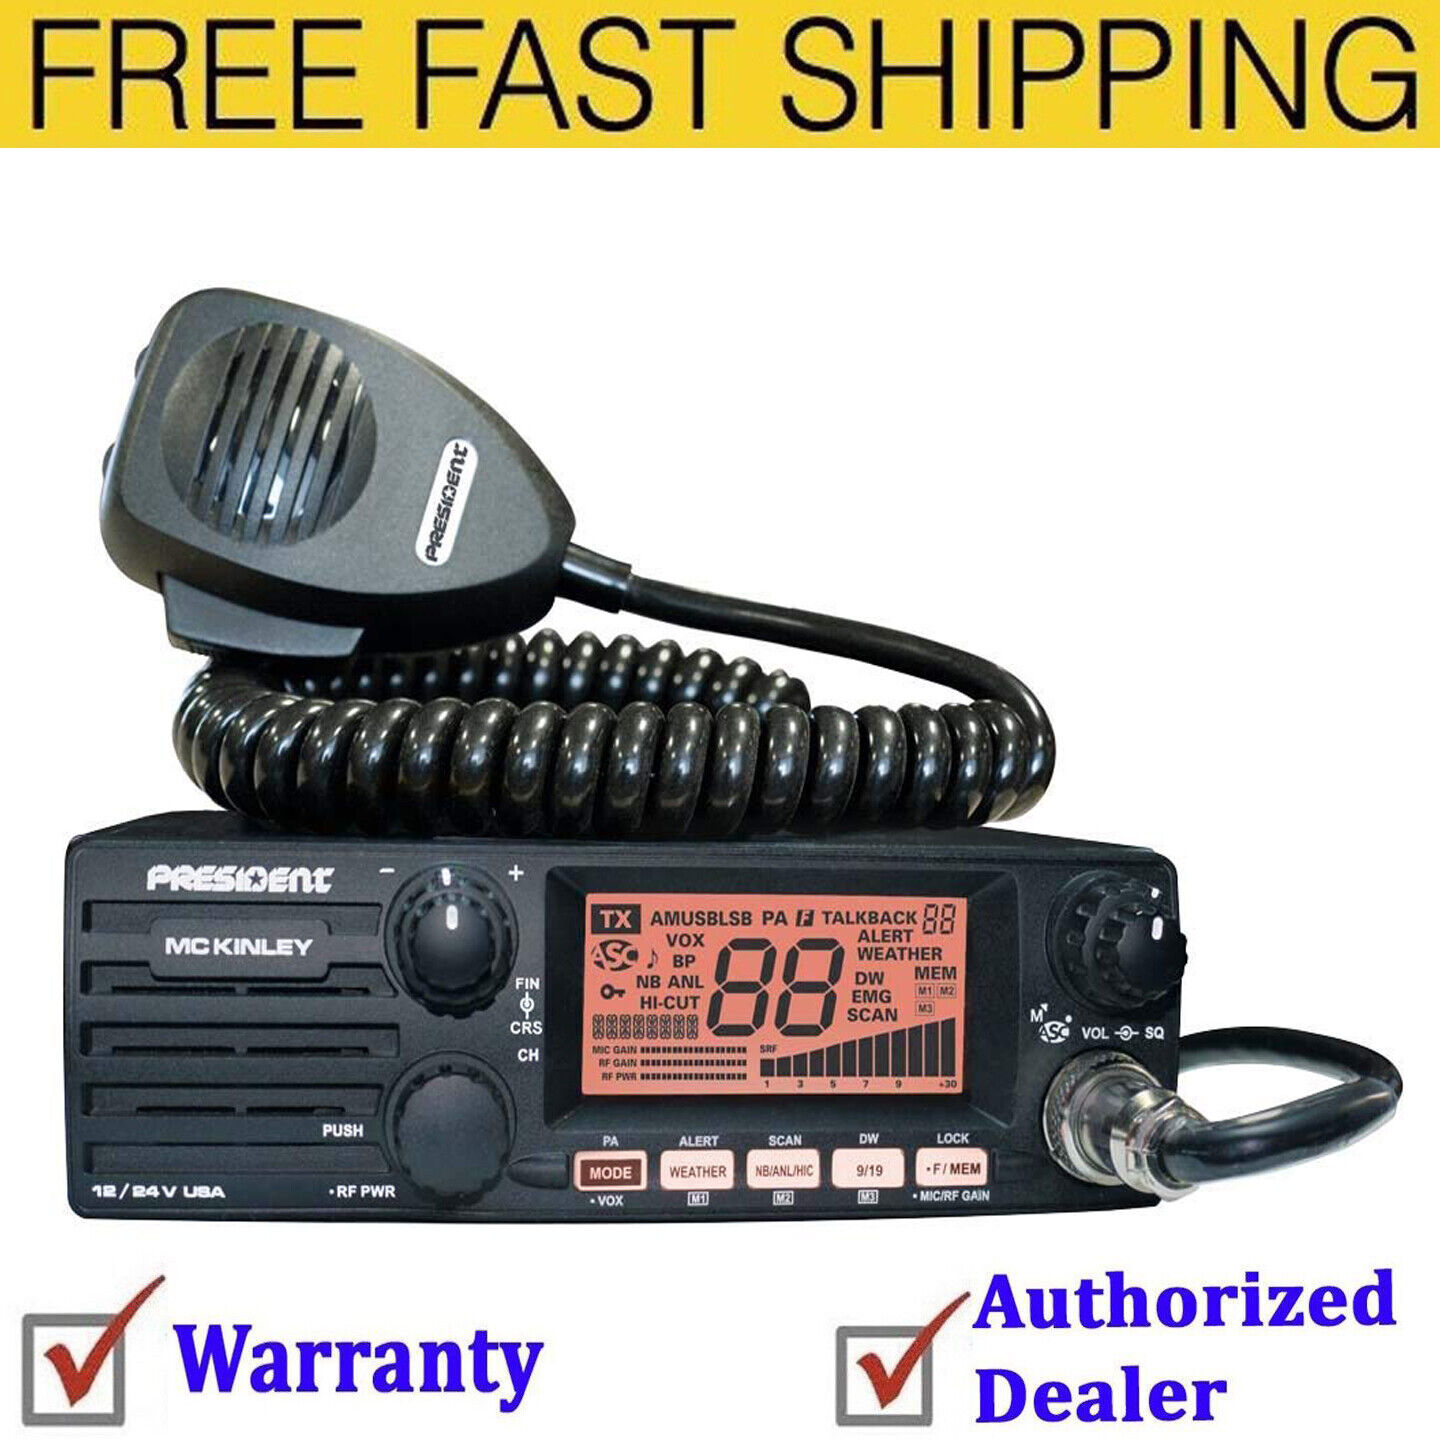 President McKinley USA 40 Channel CB Radio AM/SSB/PA 12/24V Weather Compact New. Buy it now for 179.00